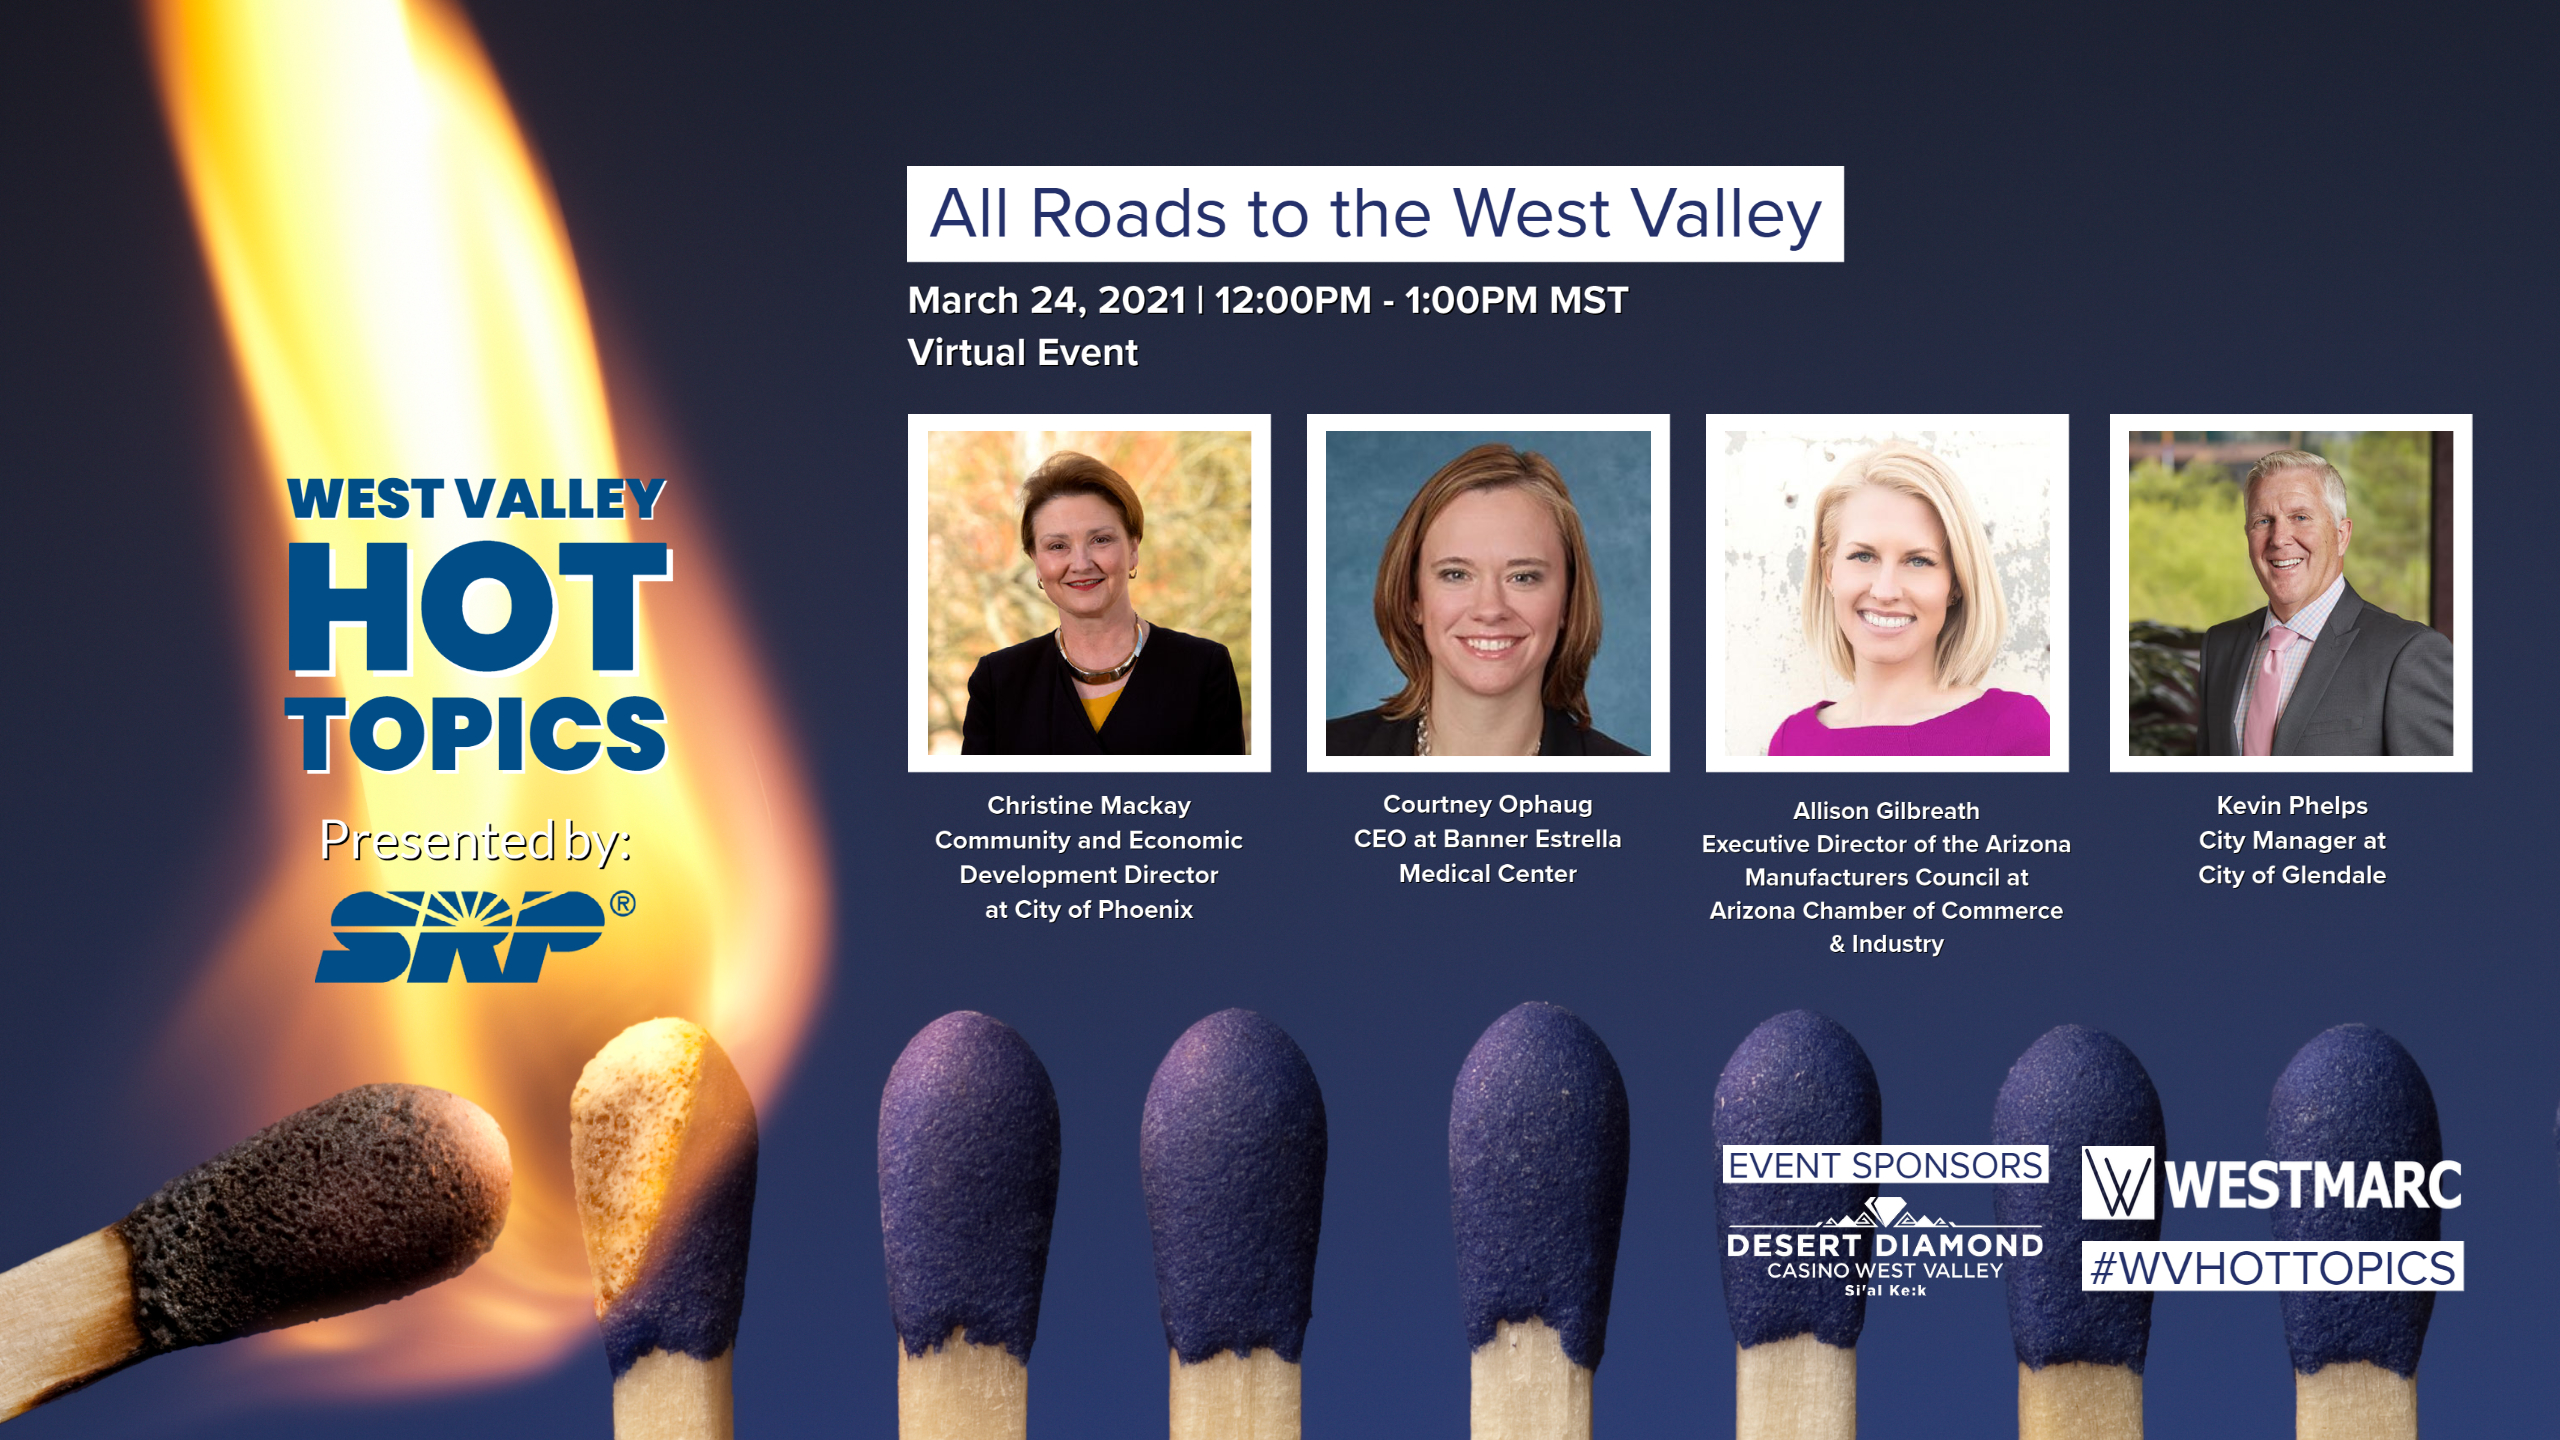 Join us to learn about the unique uses along each West Valley freeway.  From healthcare, technology, manufacturing, advance business to entertainment – the West Valley has it all within a convenient commute.